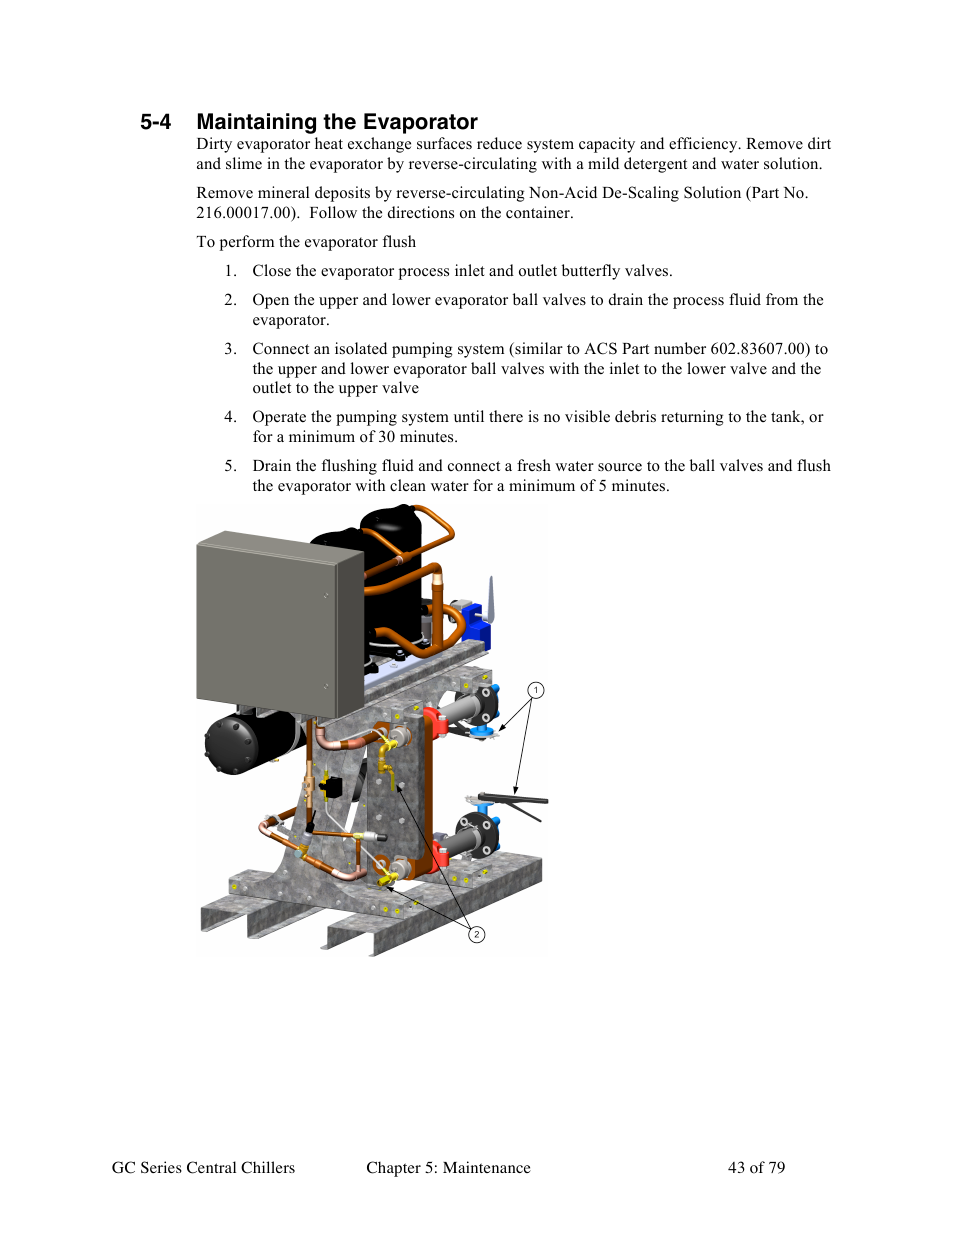 4 maintaining the evaporator | Sterlco GC Series Central Chiller User Manual  | Page 43 / 79